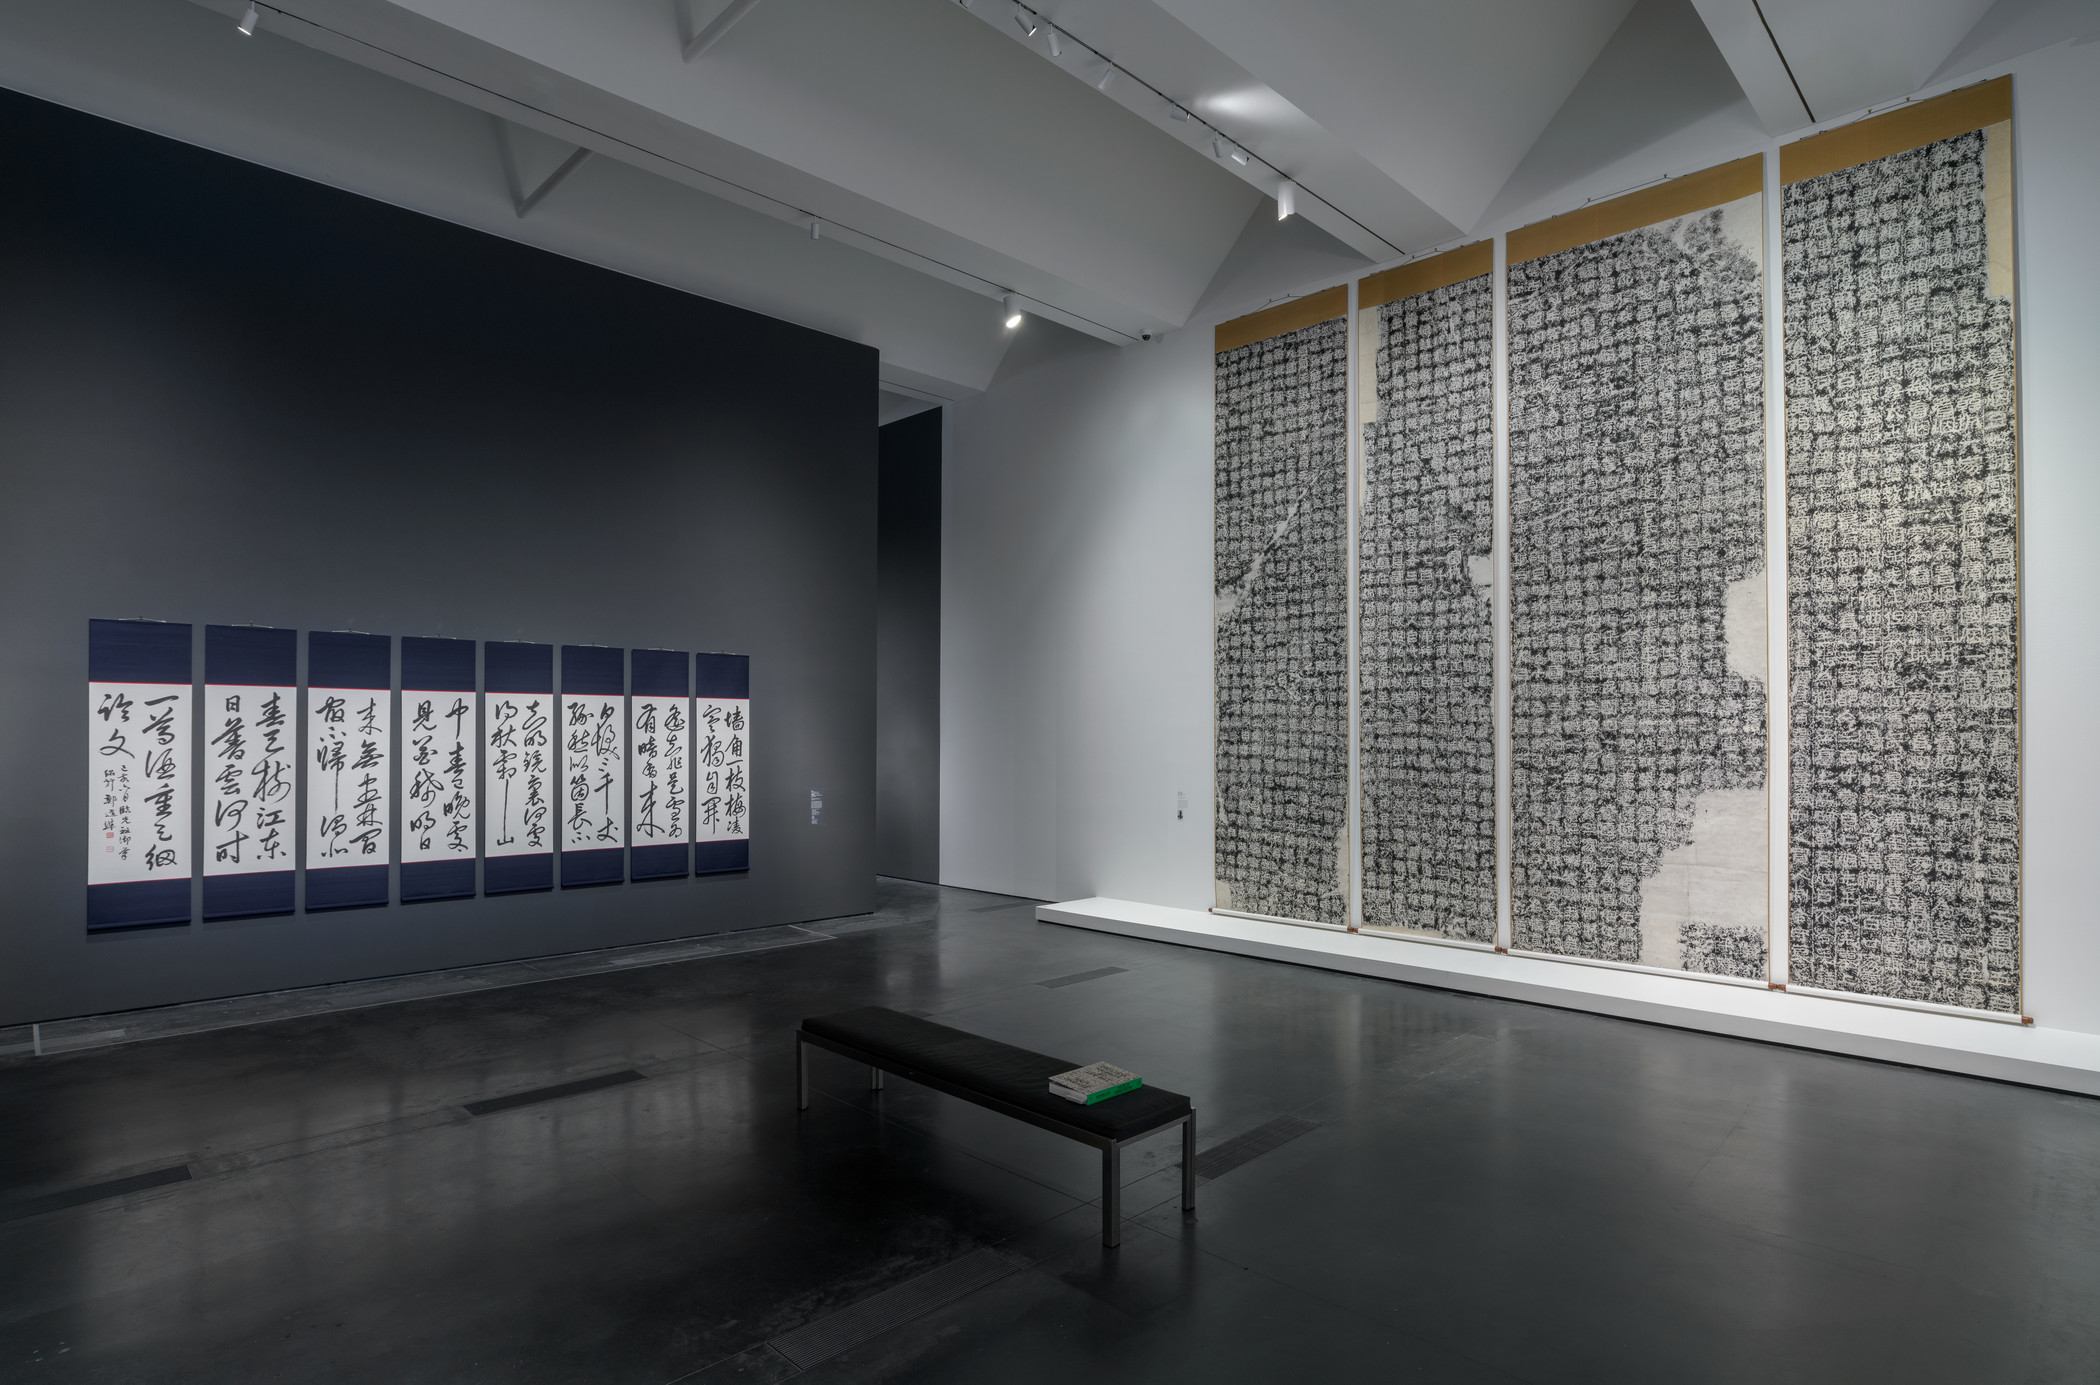 Installation photograph of the exhibition Beyond Line: The Art of Korean Writing, at the Los Angeles County Museum of Art, June 16–September 29, 2019, photo © Museum Associates/LACMA